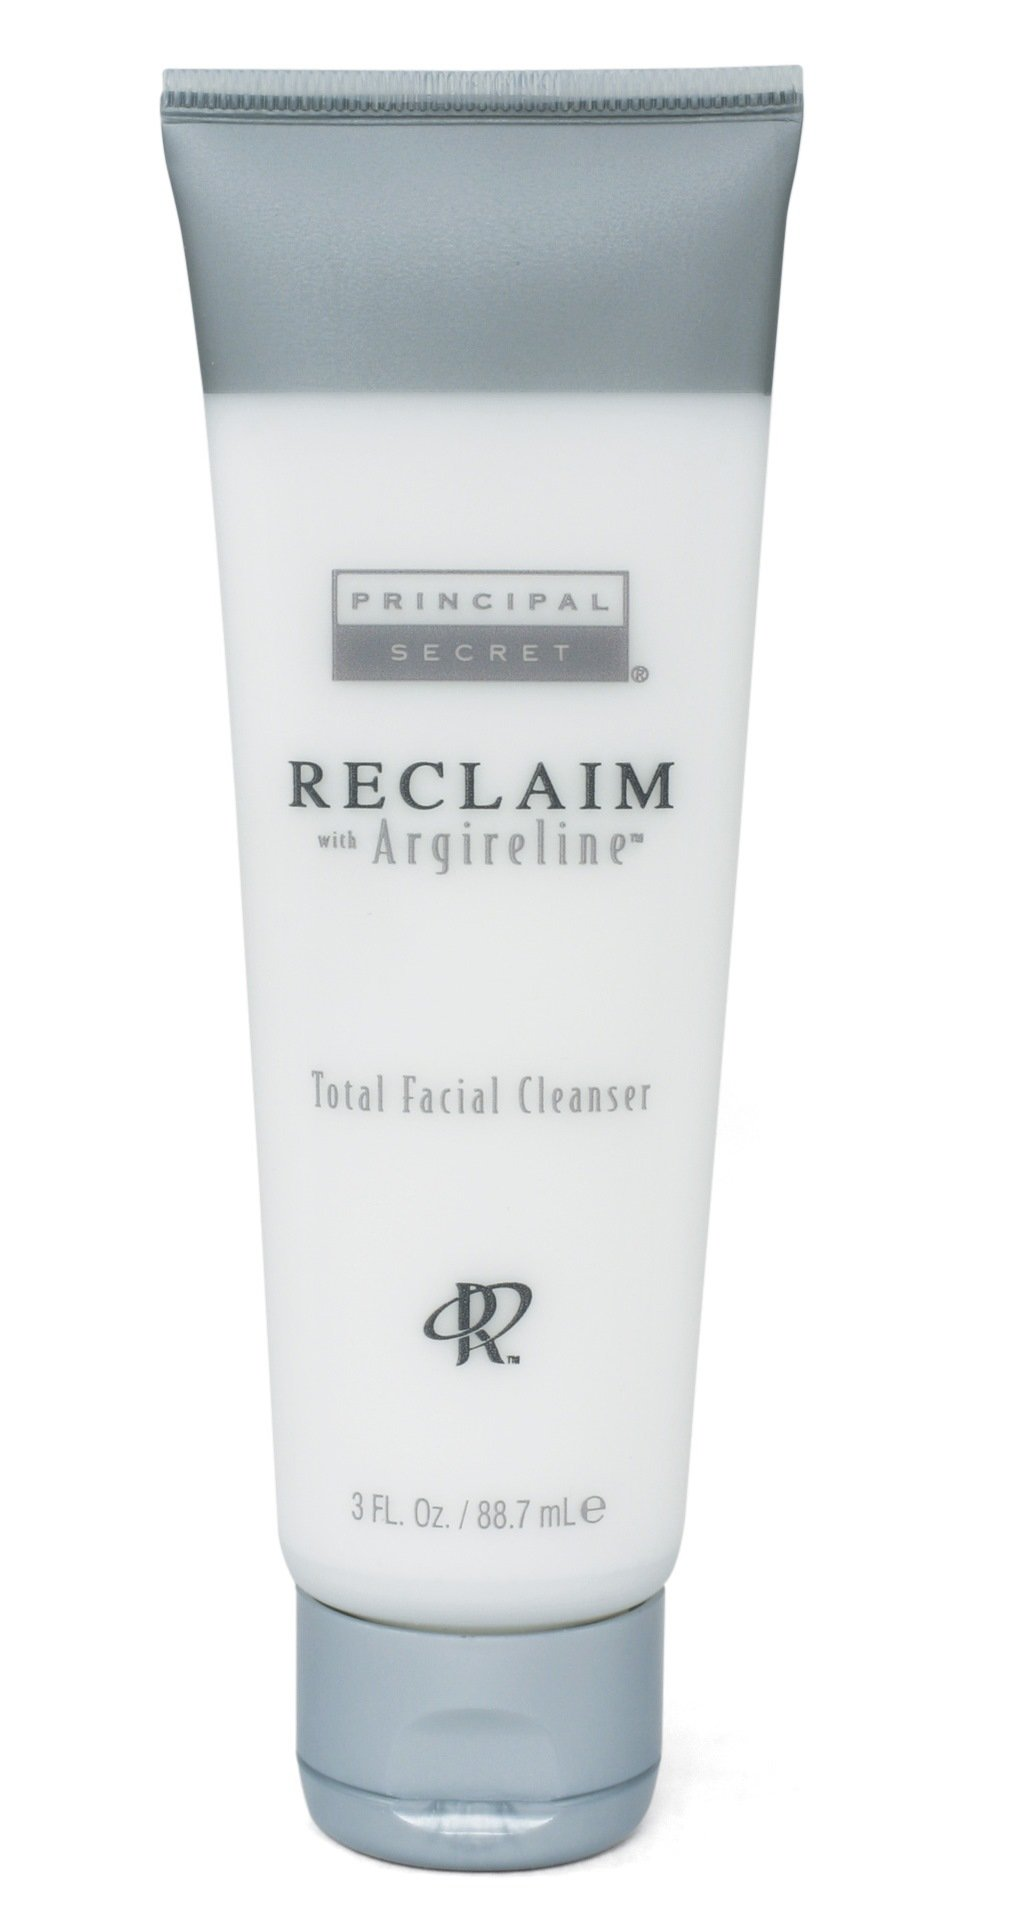 Principal Secret – Reclaim with Argireline – Total Facial Cleanser – 30 Day Supply/3 Ounces